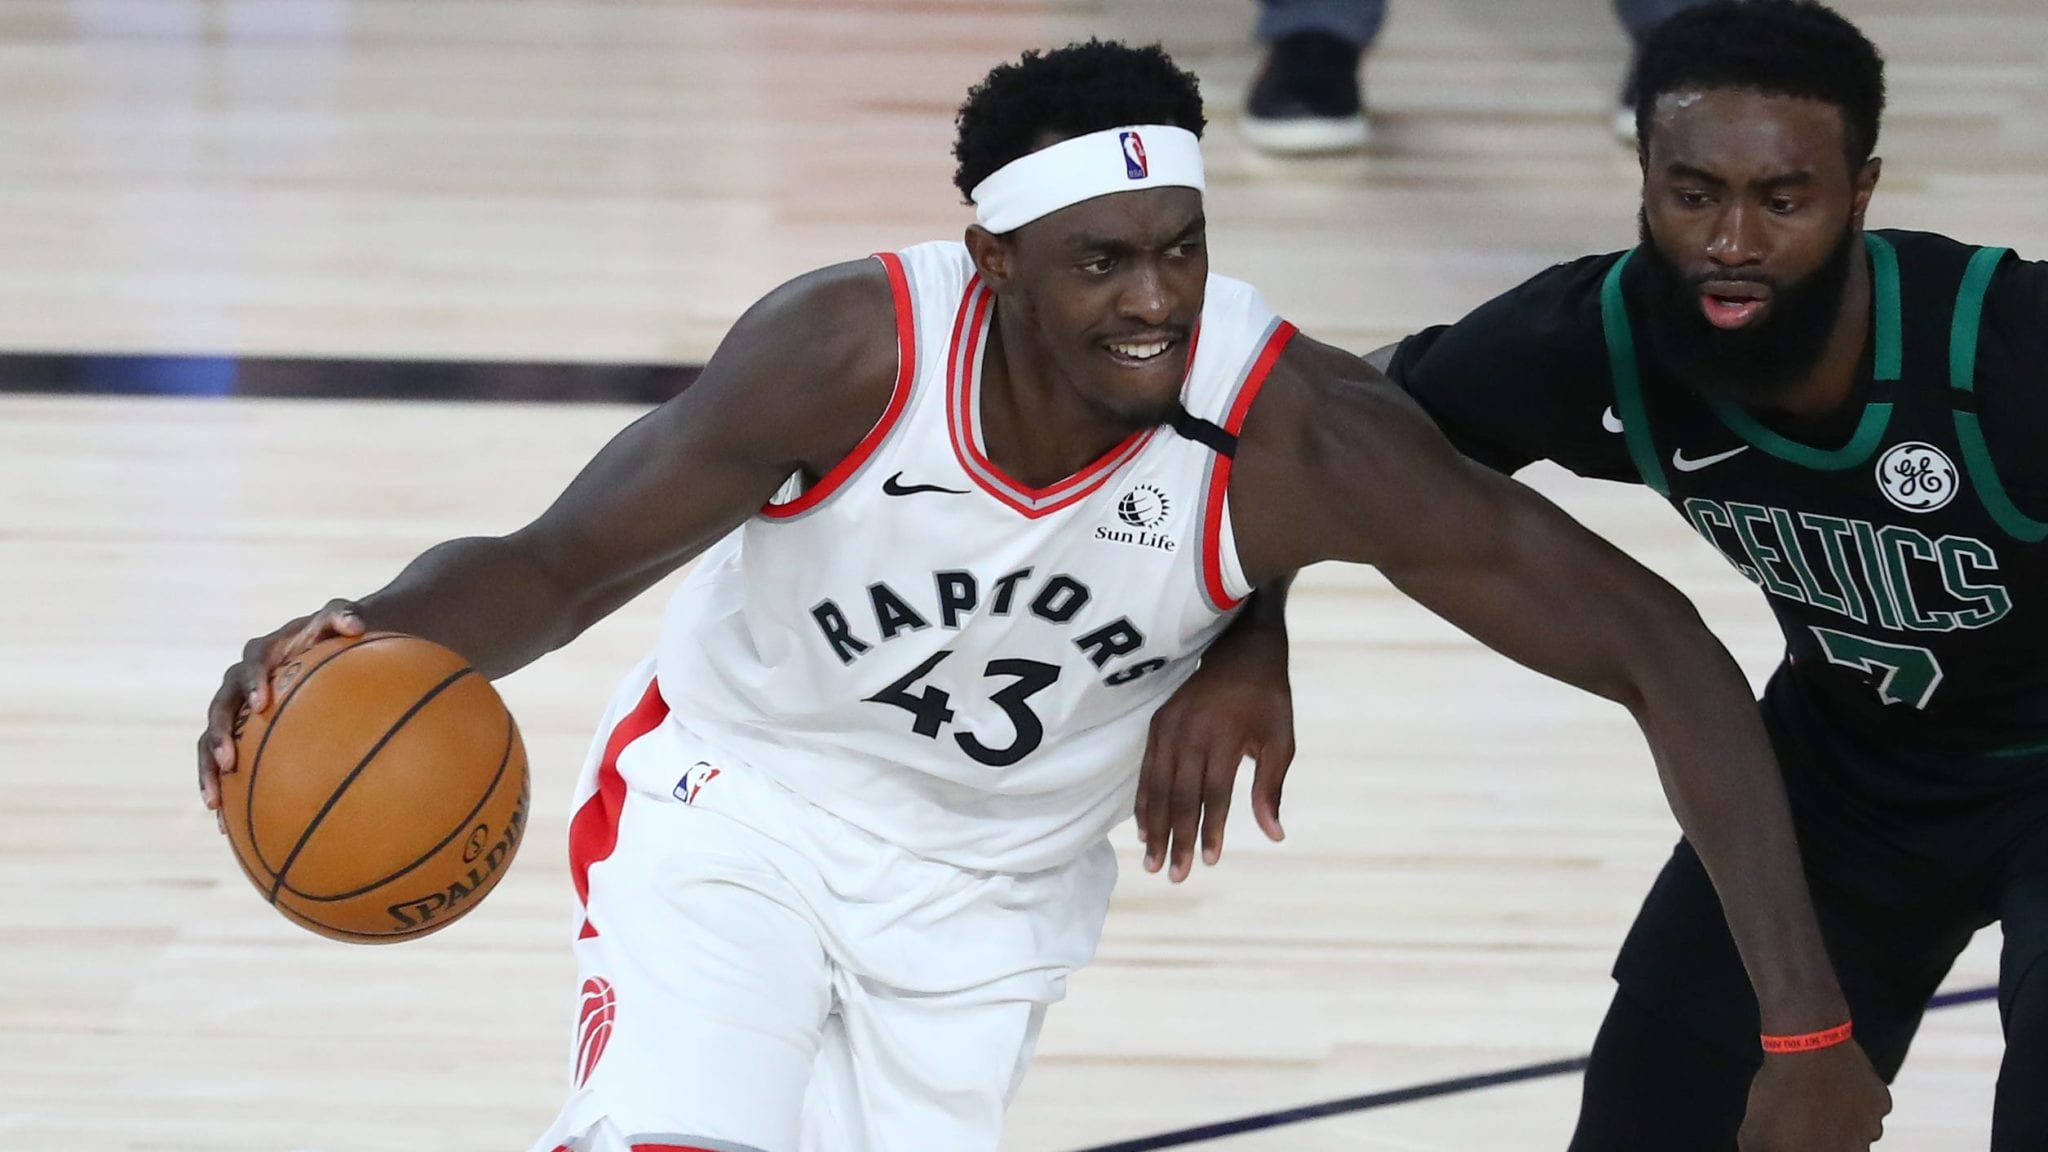 Raptors forward Pascal Siakam